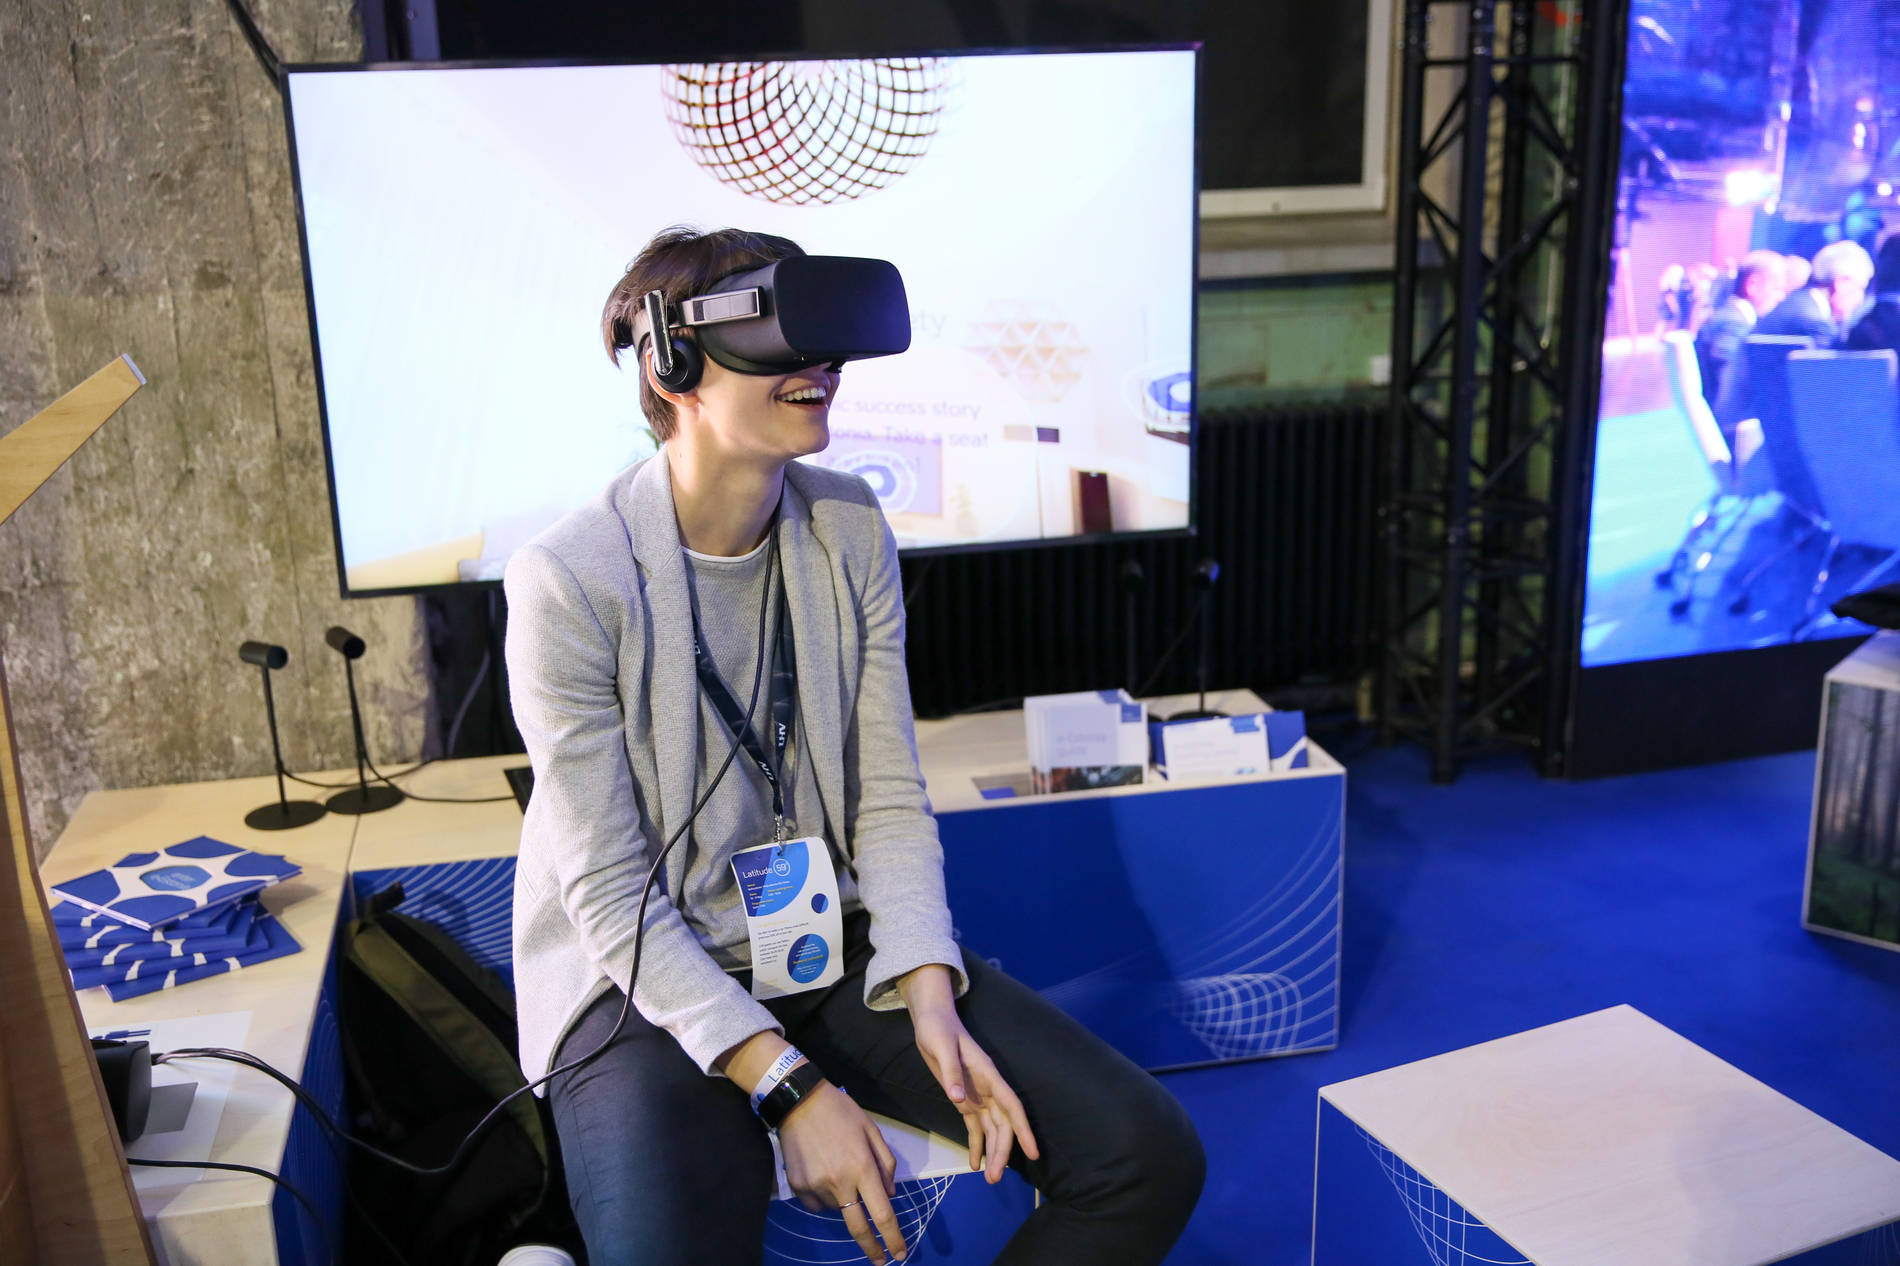 A woman smiling when wearing virtual reality glasses and experiencing virtual reality.